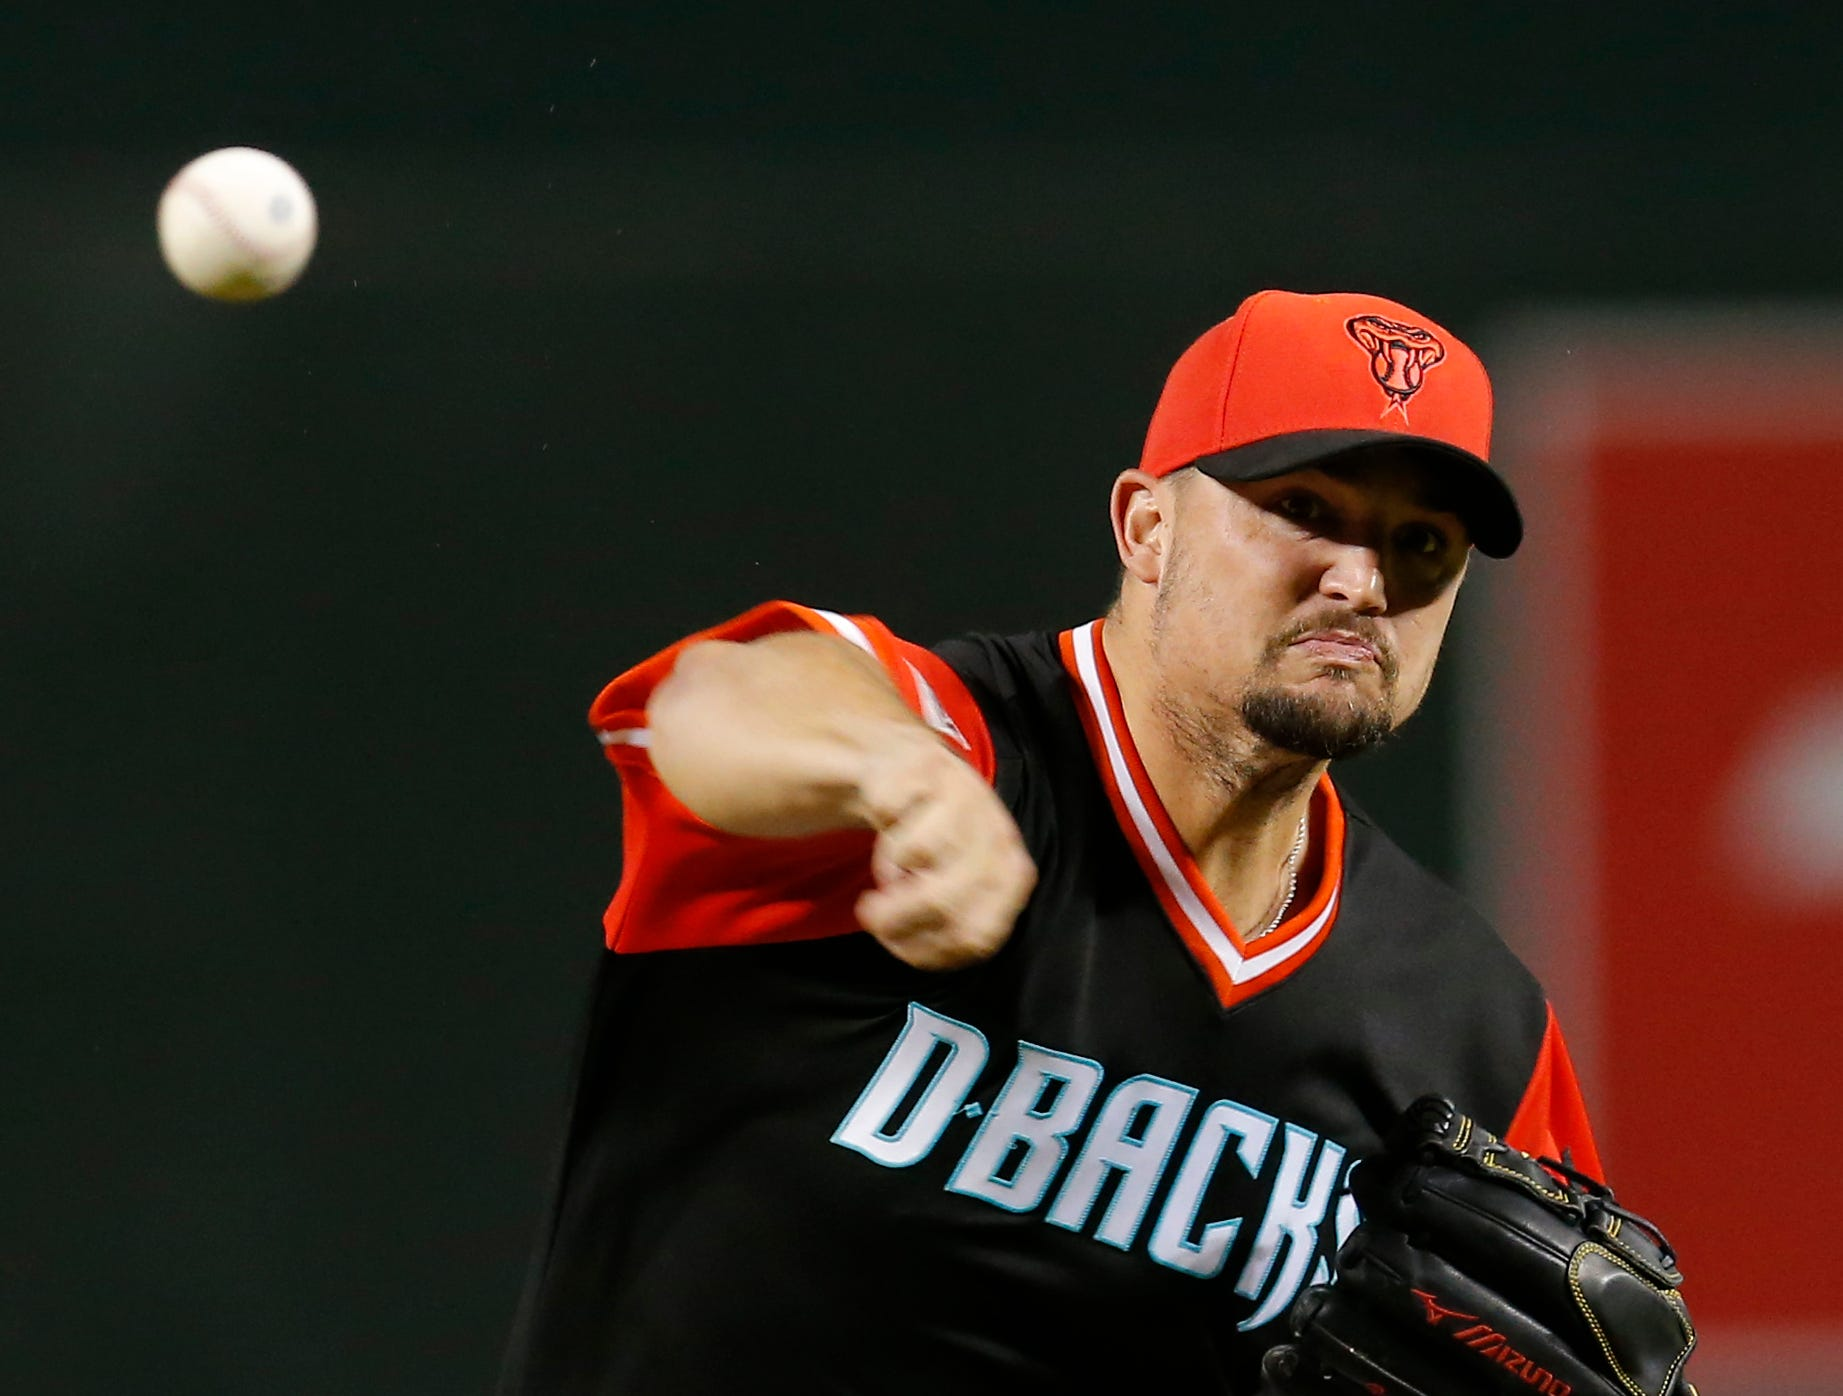 Arizona Diamondbacks pitcher Zack Godley throws during the first inning of the team's baseball game against the Seattle Mariners, Friday, Aug. 24, 2018, in Phoenix.